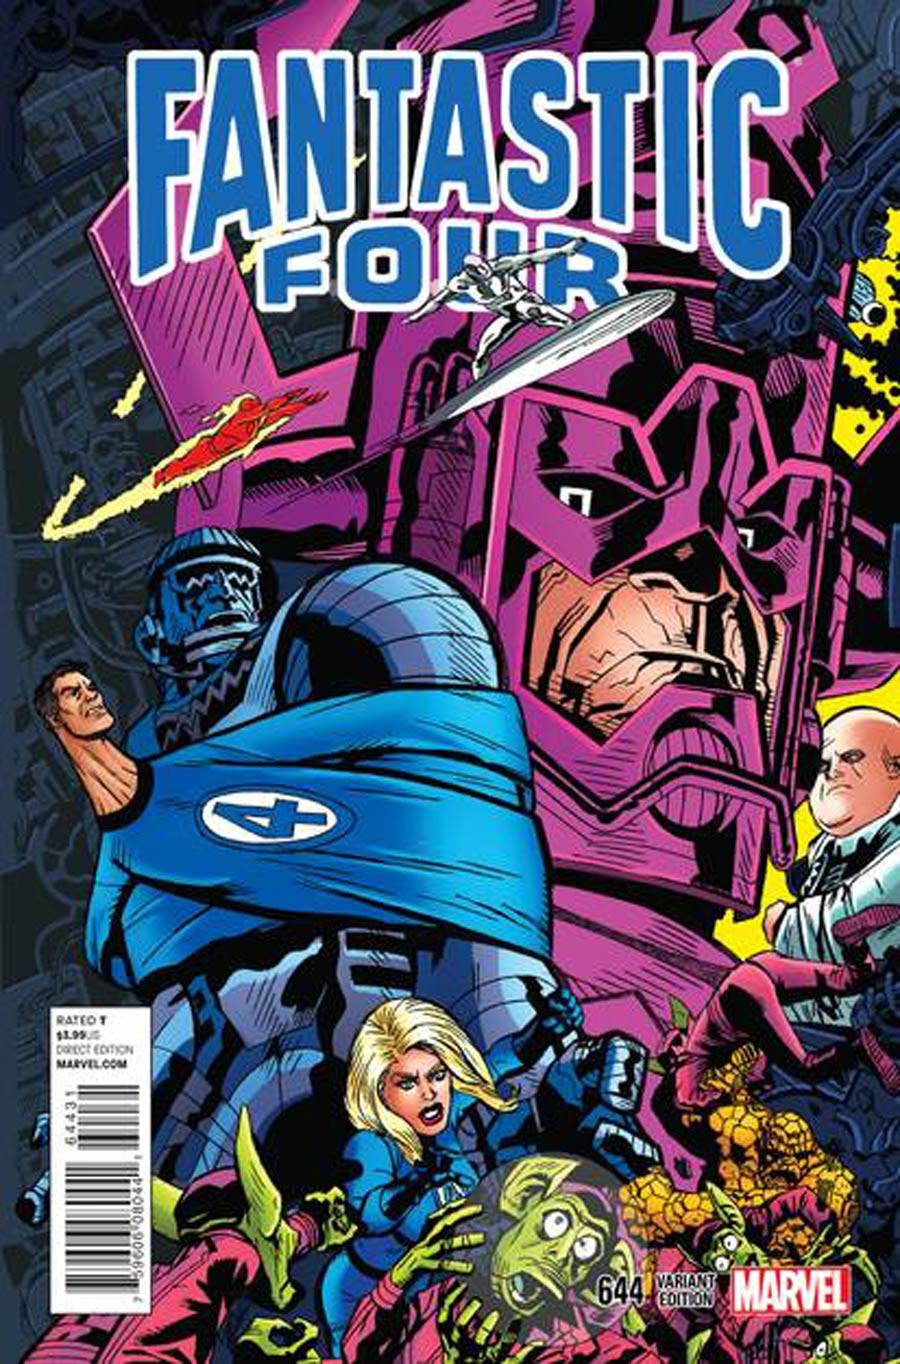 Fantastic Four Vol 5 #644 Cover B Variant Michael Golden Connecting Cover